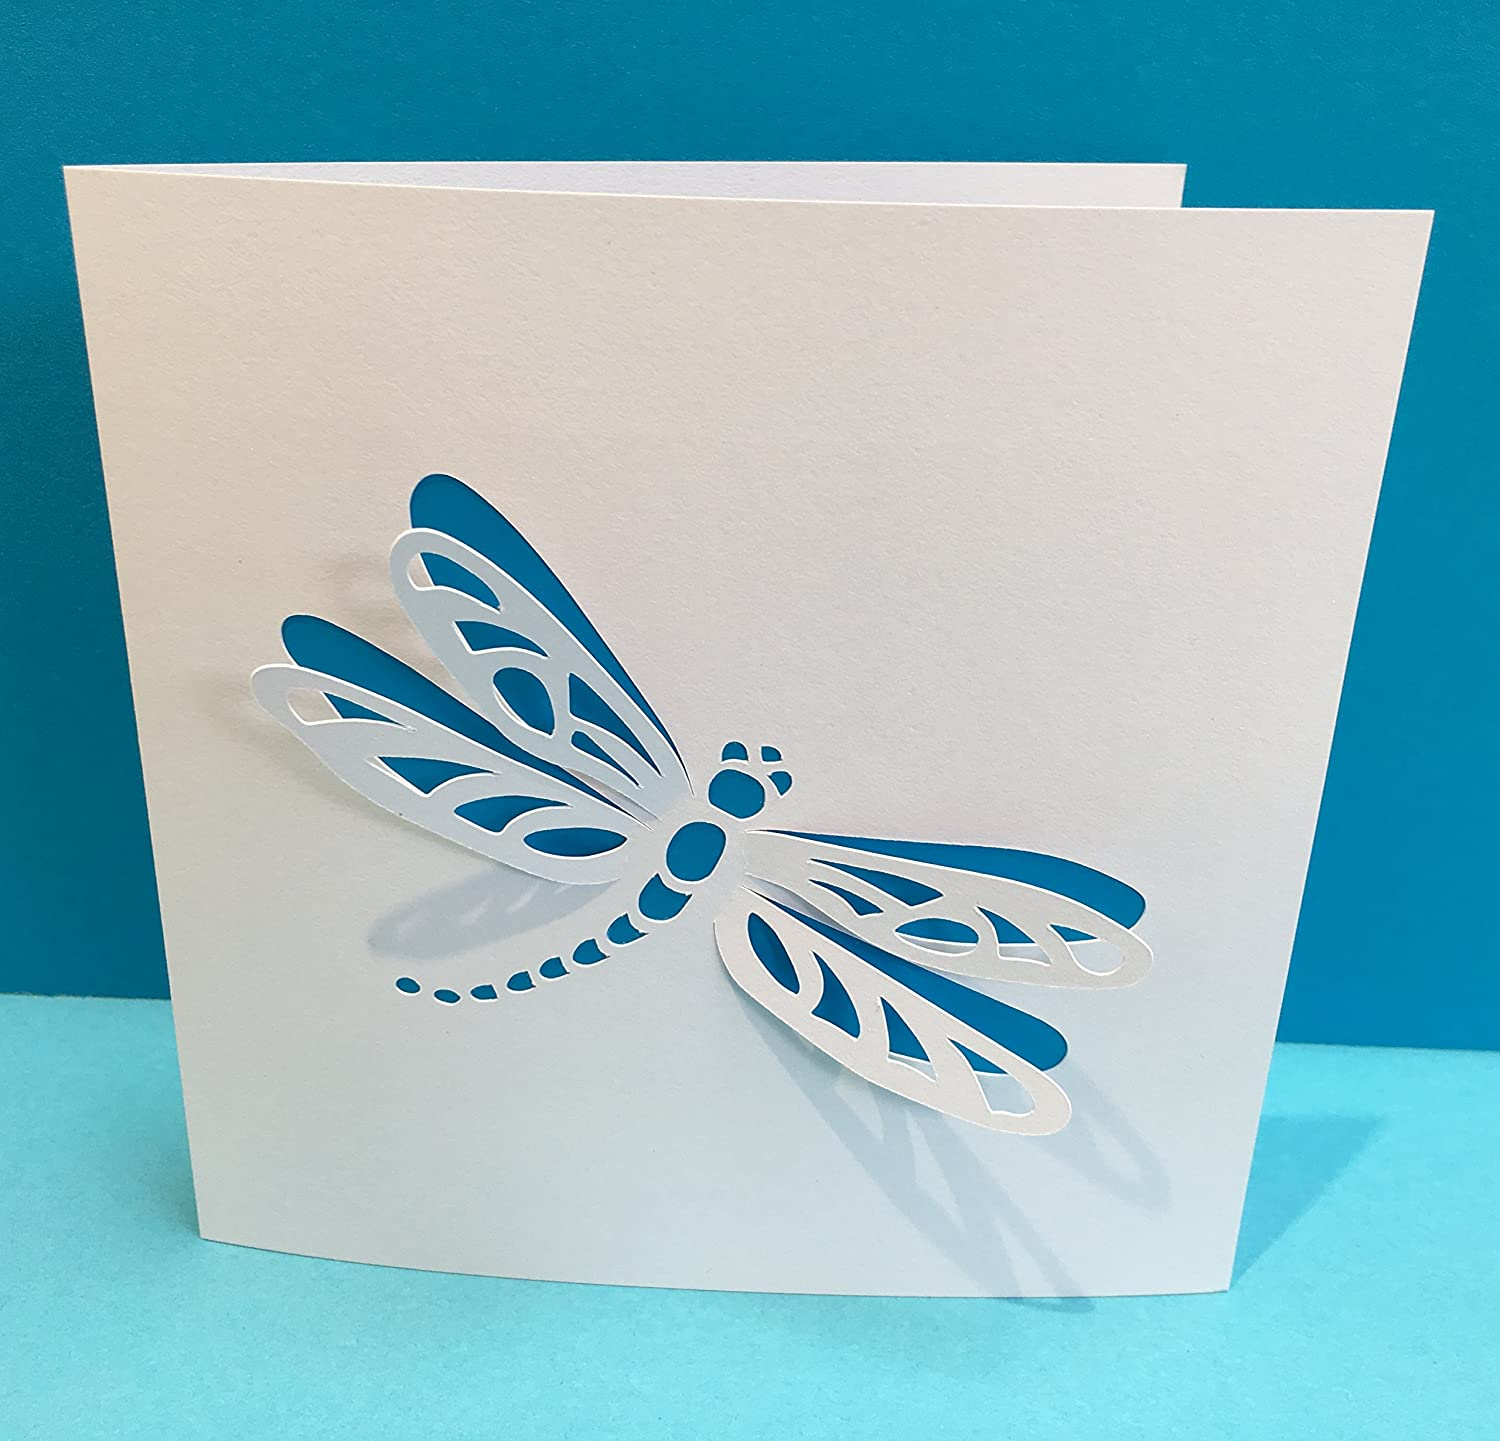 Strange Dragonfly Card Paper Cut Dragonfly Handmade Greeting Card Funny Birthday Cards Online Alyptdamsfinfo